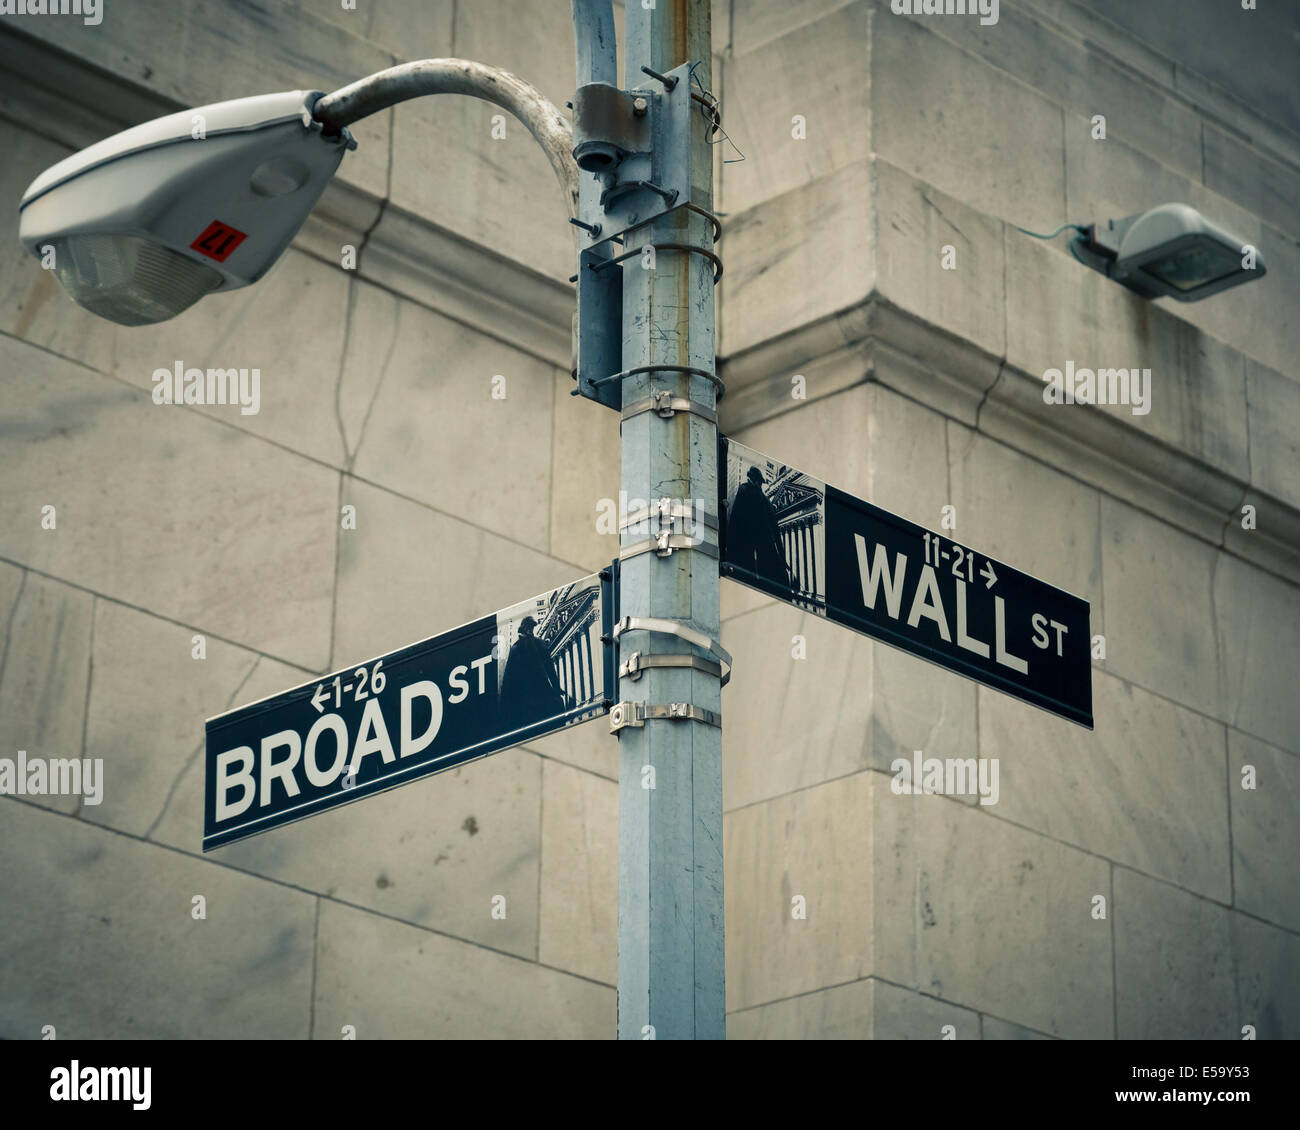 Street signs of Wall street and Broad street - Stock Image